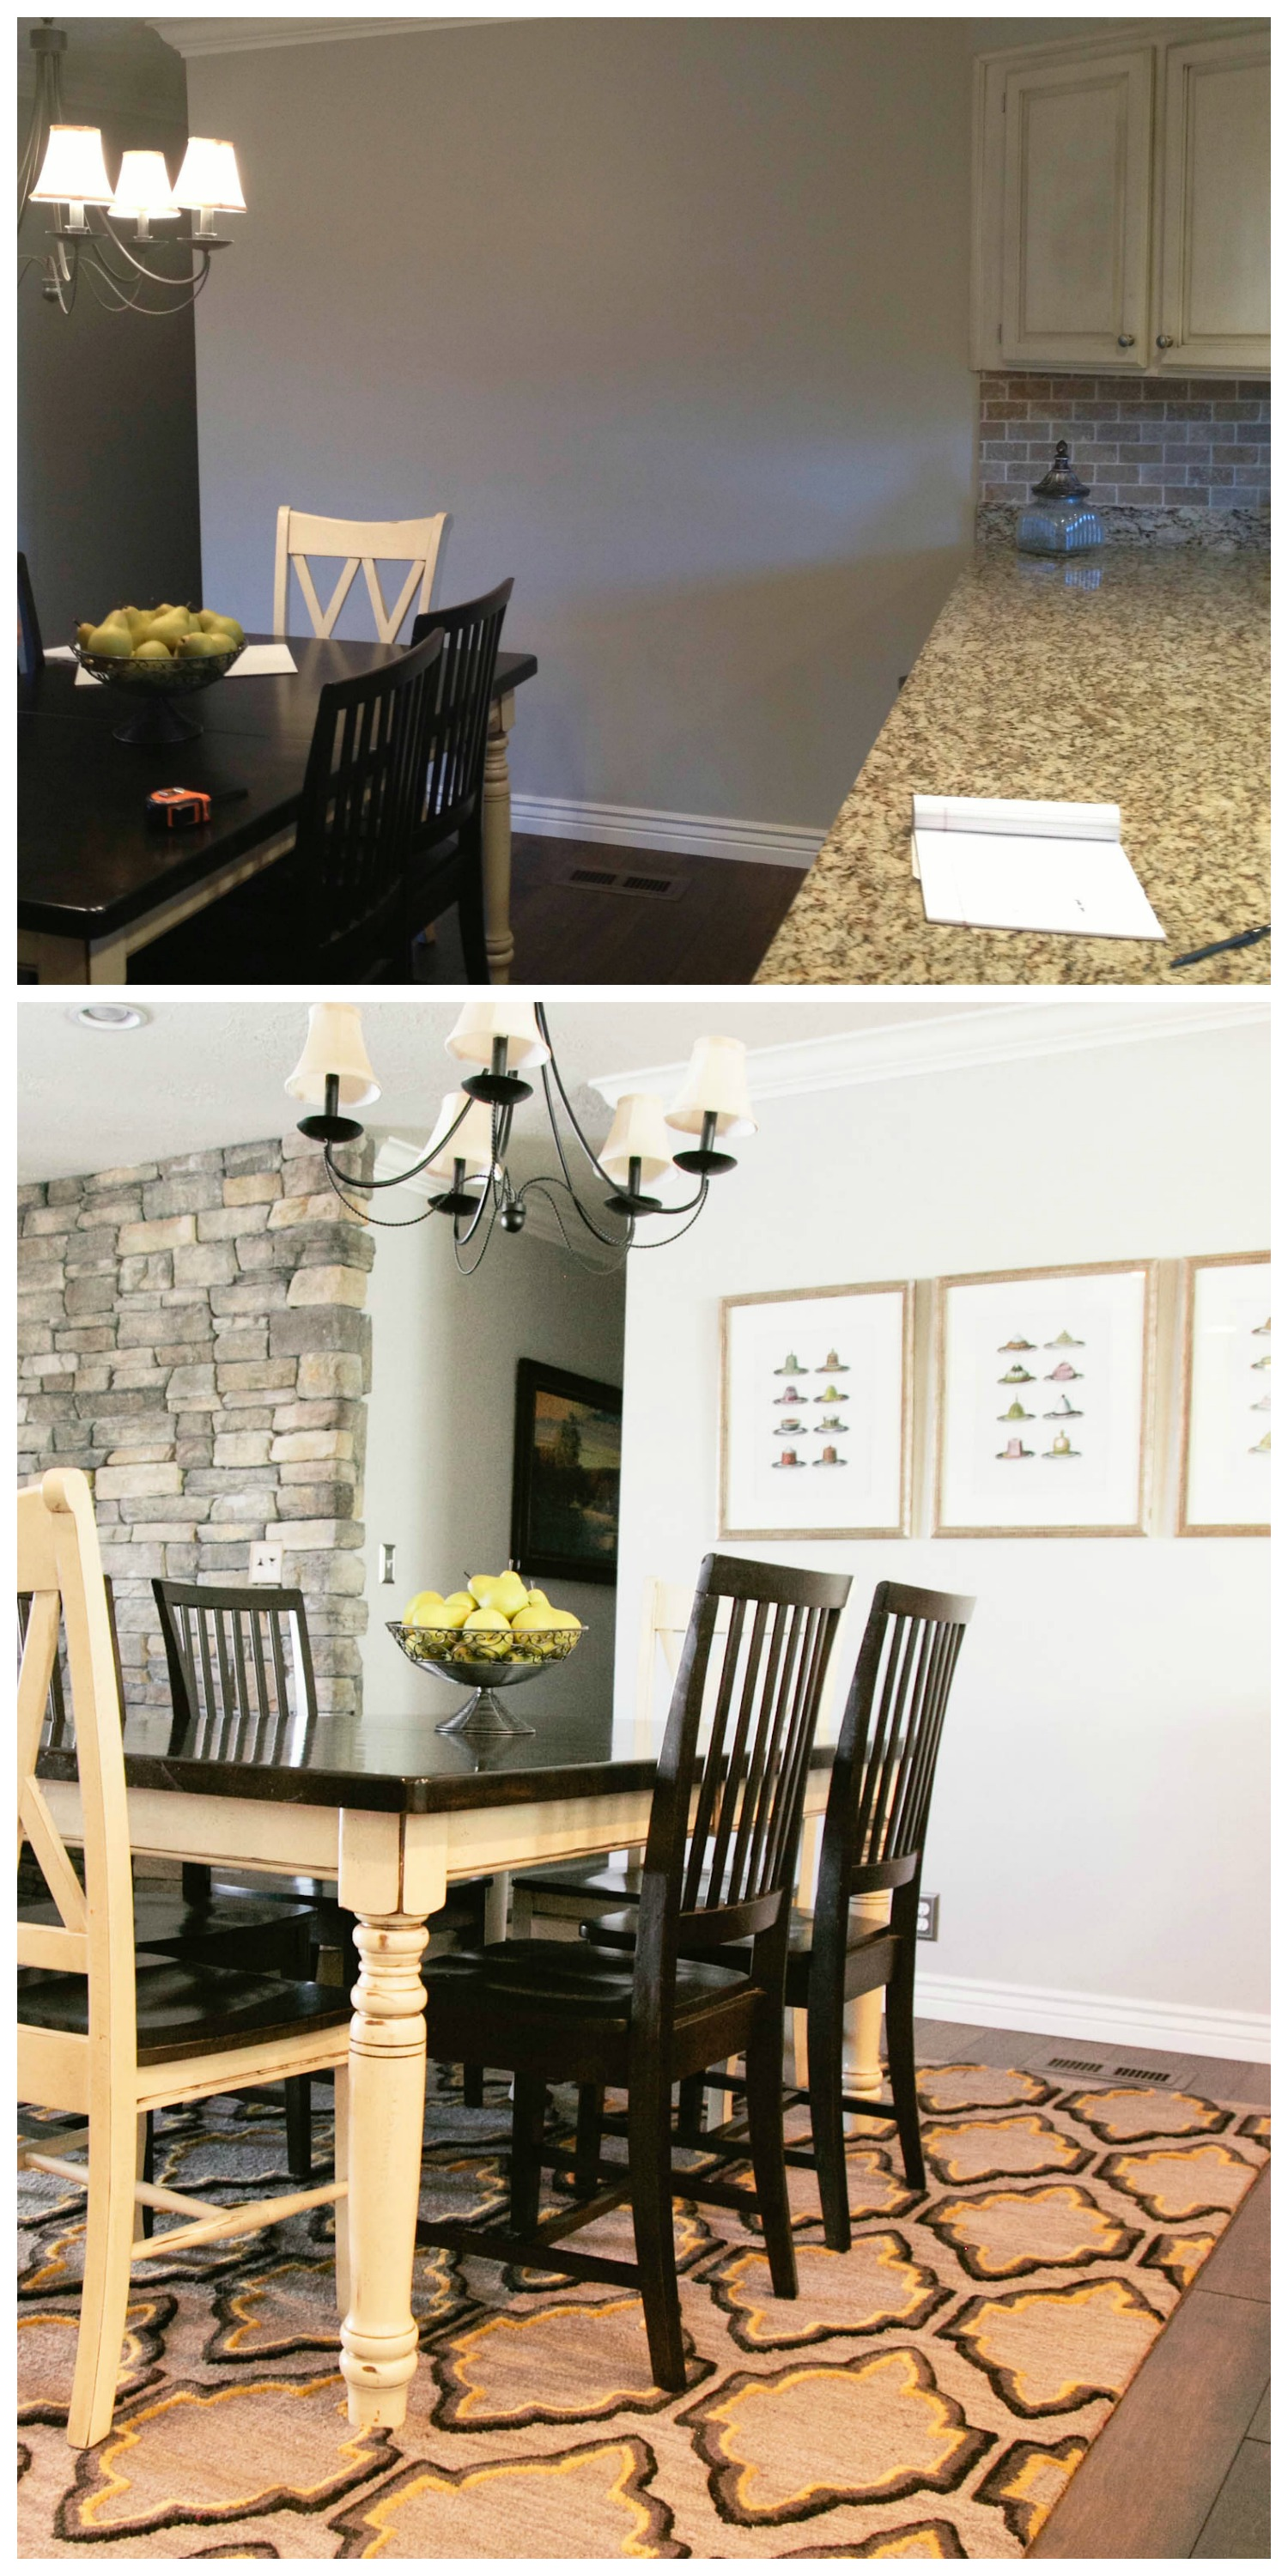 Above: Dining room BEFORE. Below: Dining room AFTER. Artwork and an area rug complete the space and tie it into the adjacent family room.